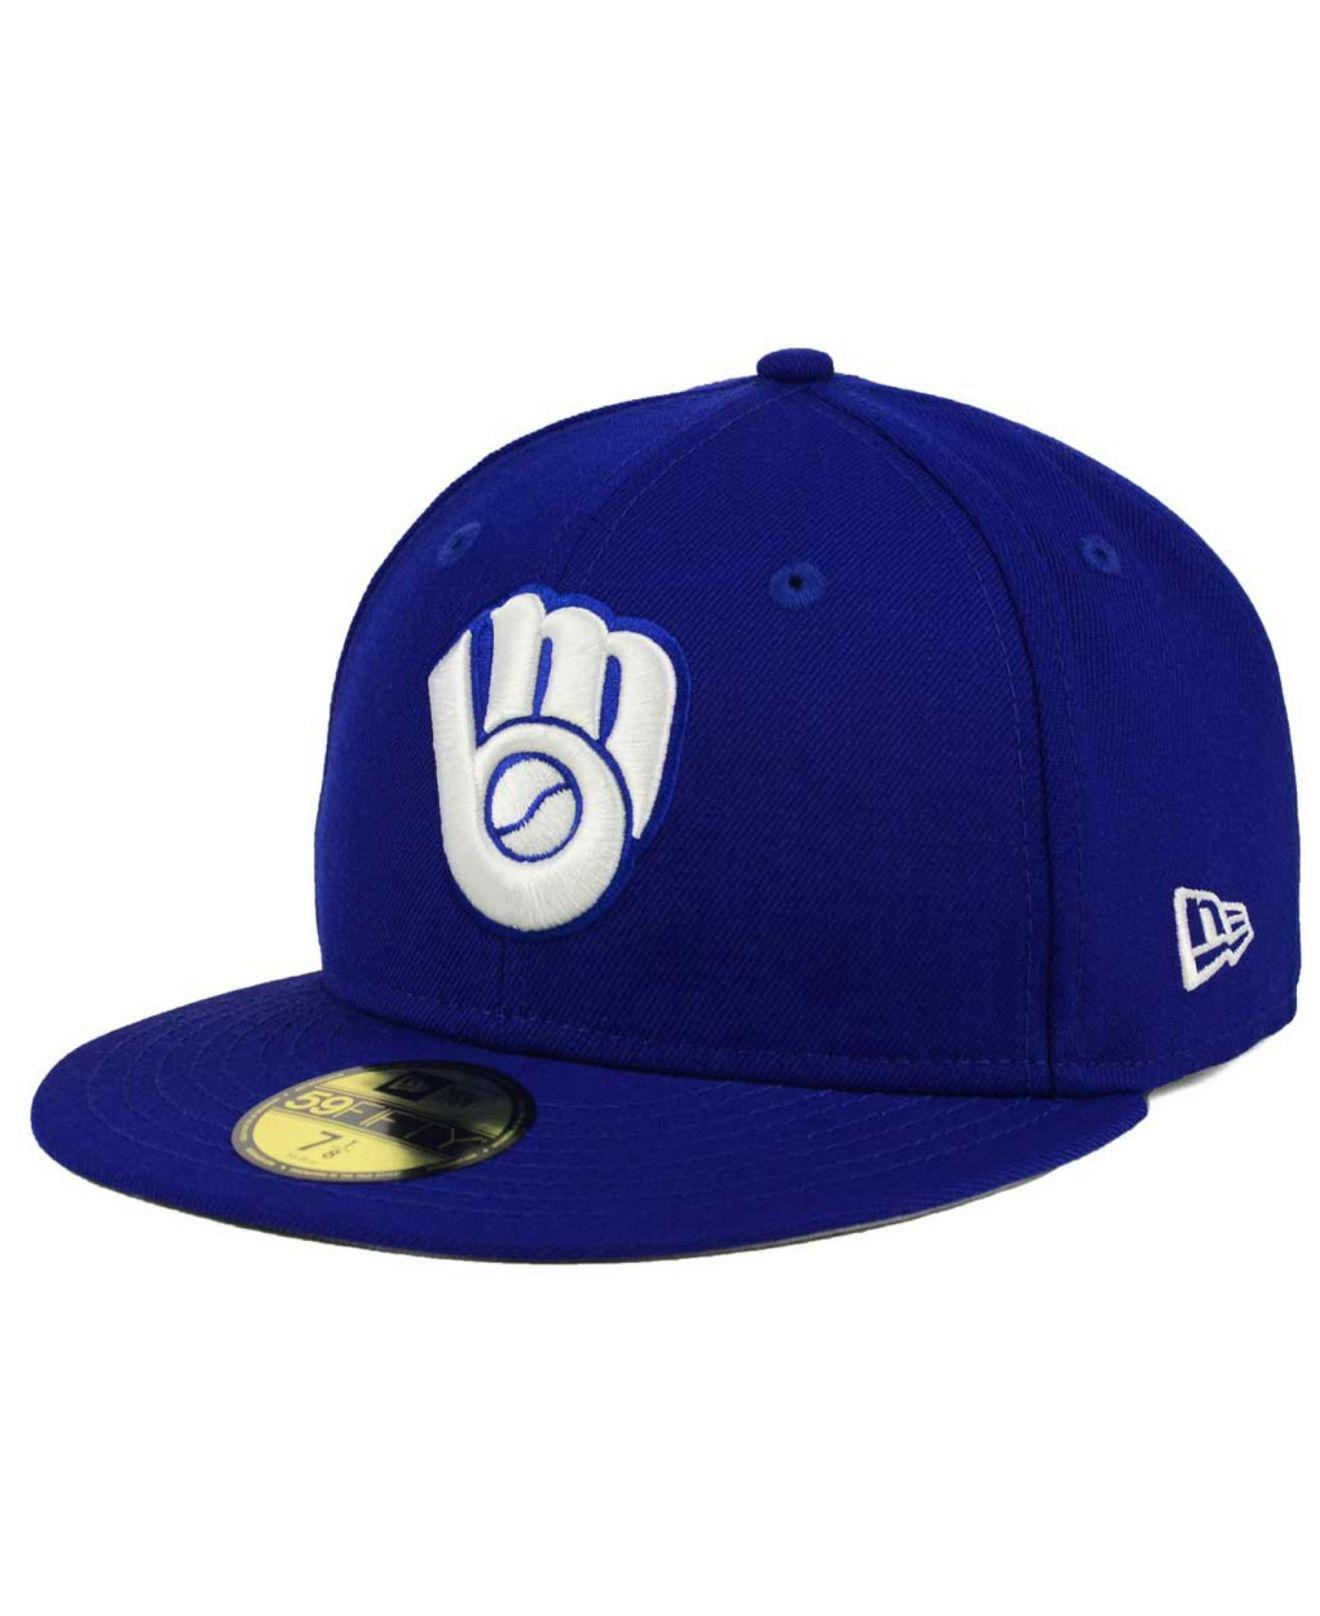 wholesale dealer b9ee4 ebc1e ... ireland ktz. mens blue milwaukee brewers c dub patch 59fifty fitted cap  58252 506c2 ...